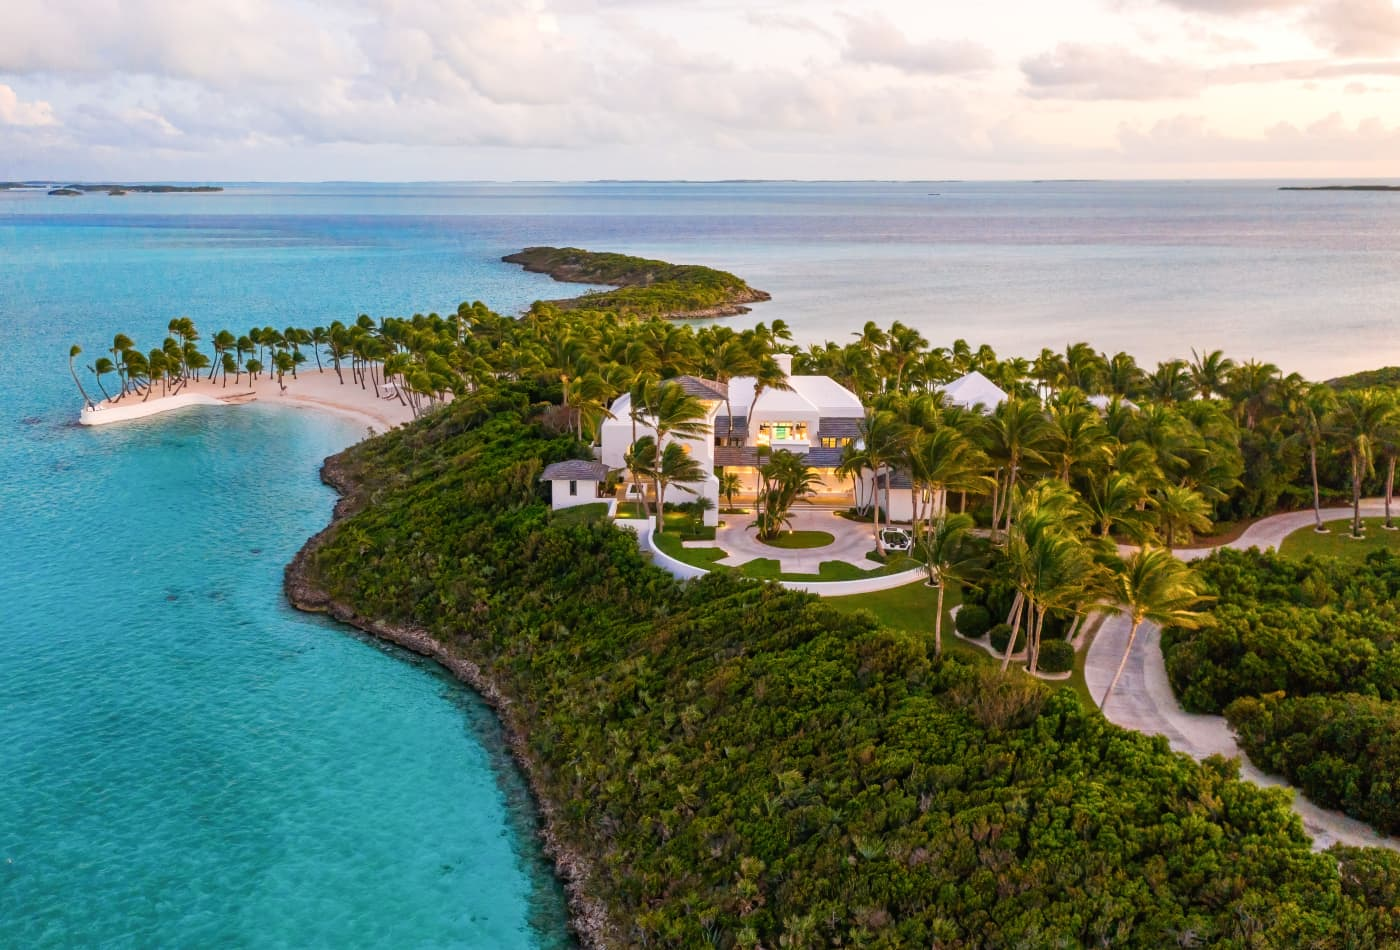 Tour Faith Hill and Tim McGraw's $35 million private island